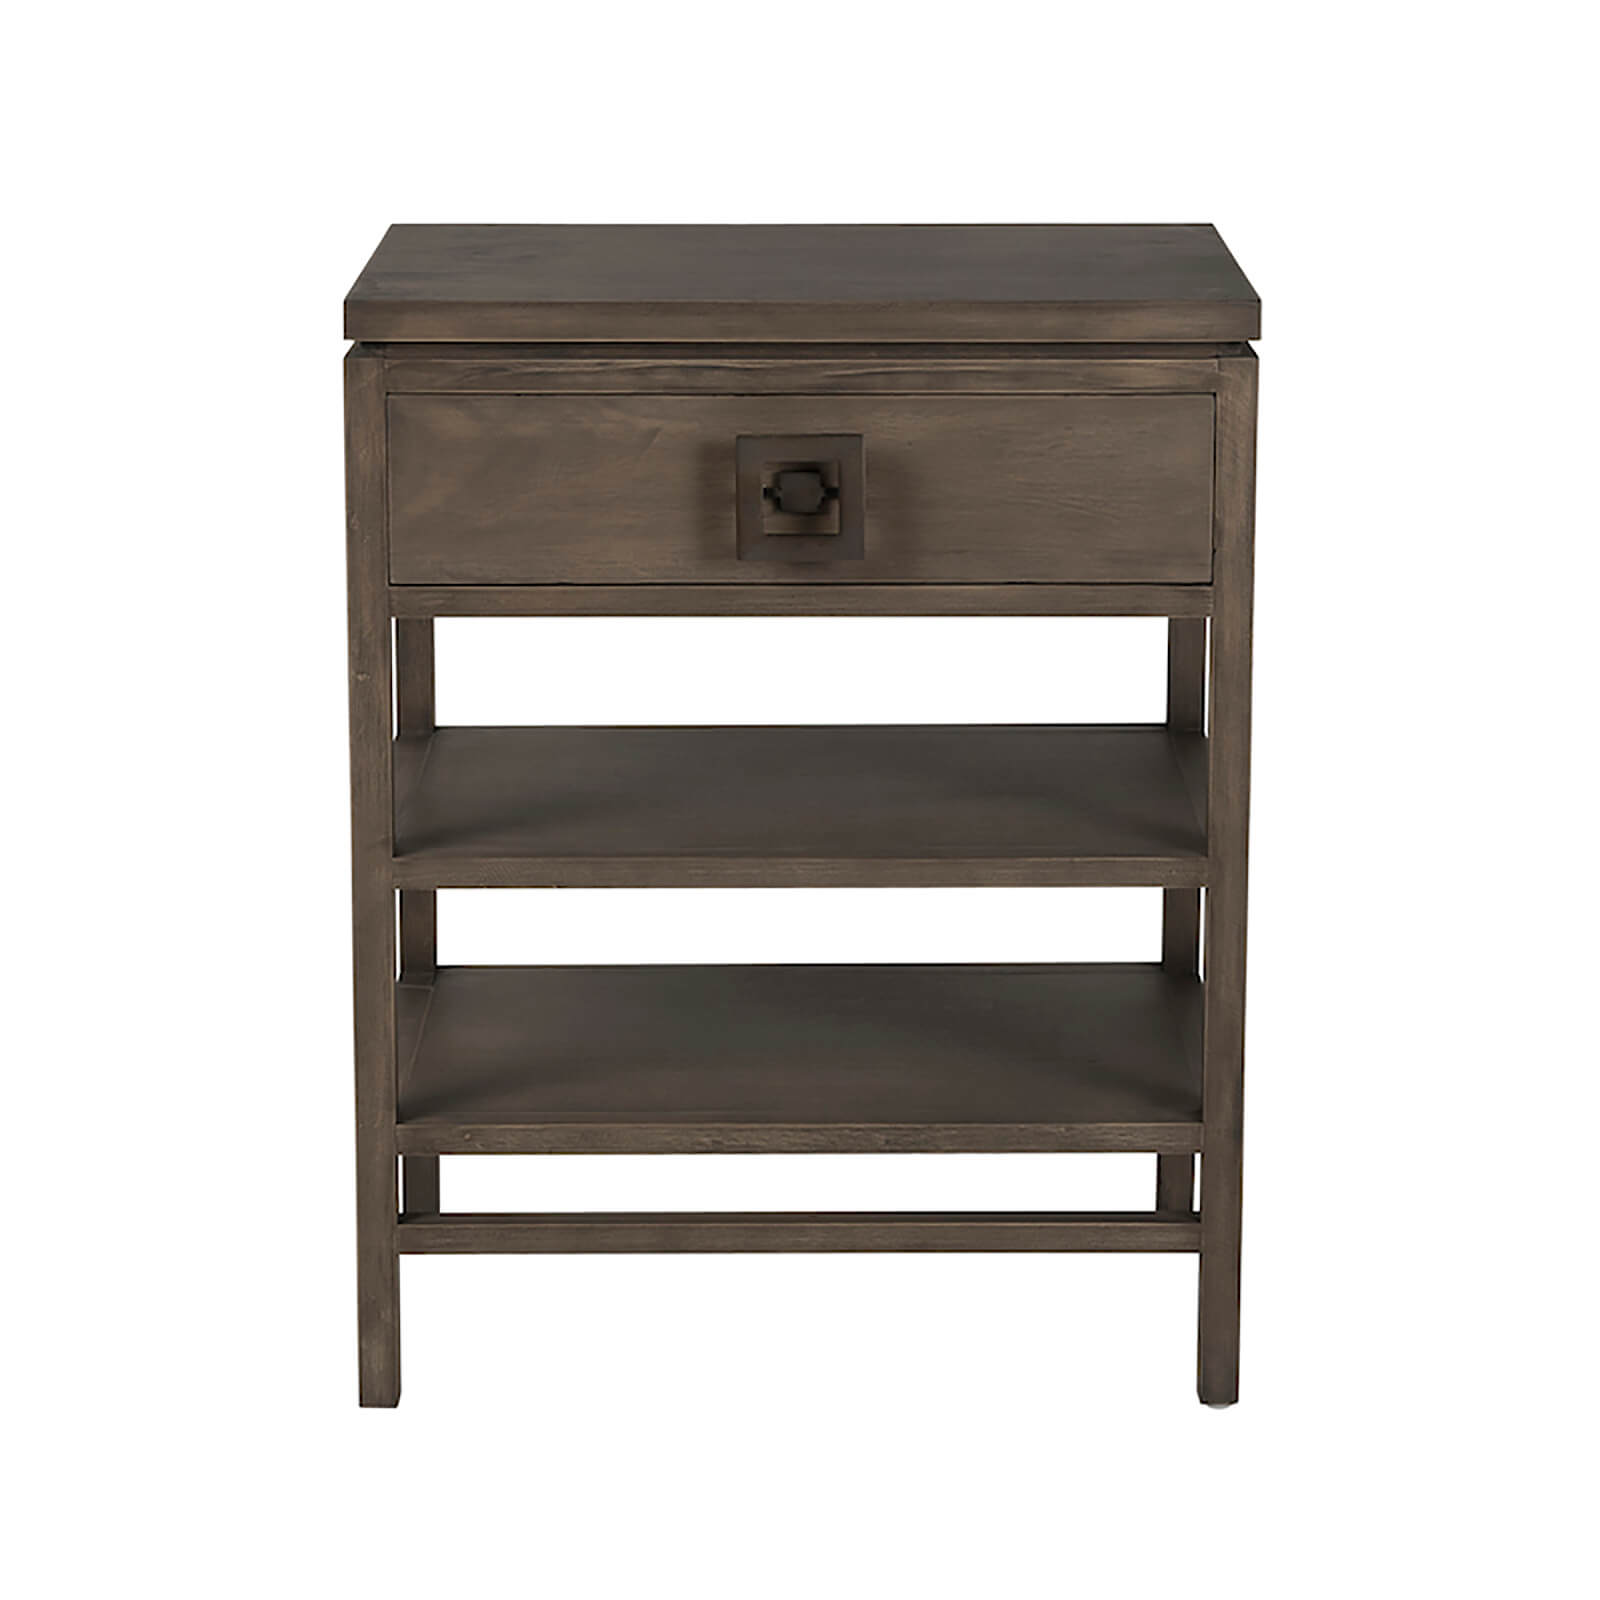 Two Design Lovers Mayvn Interiors Paxton bedside table light single drawer front